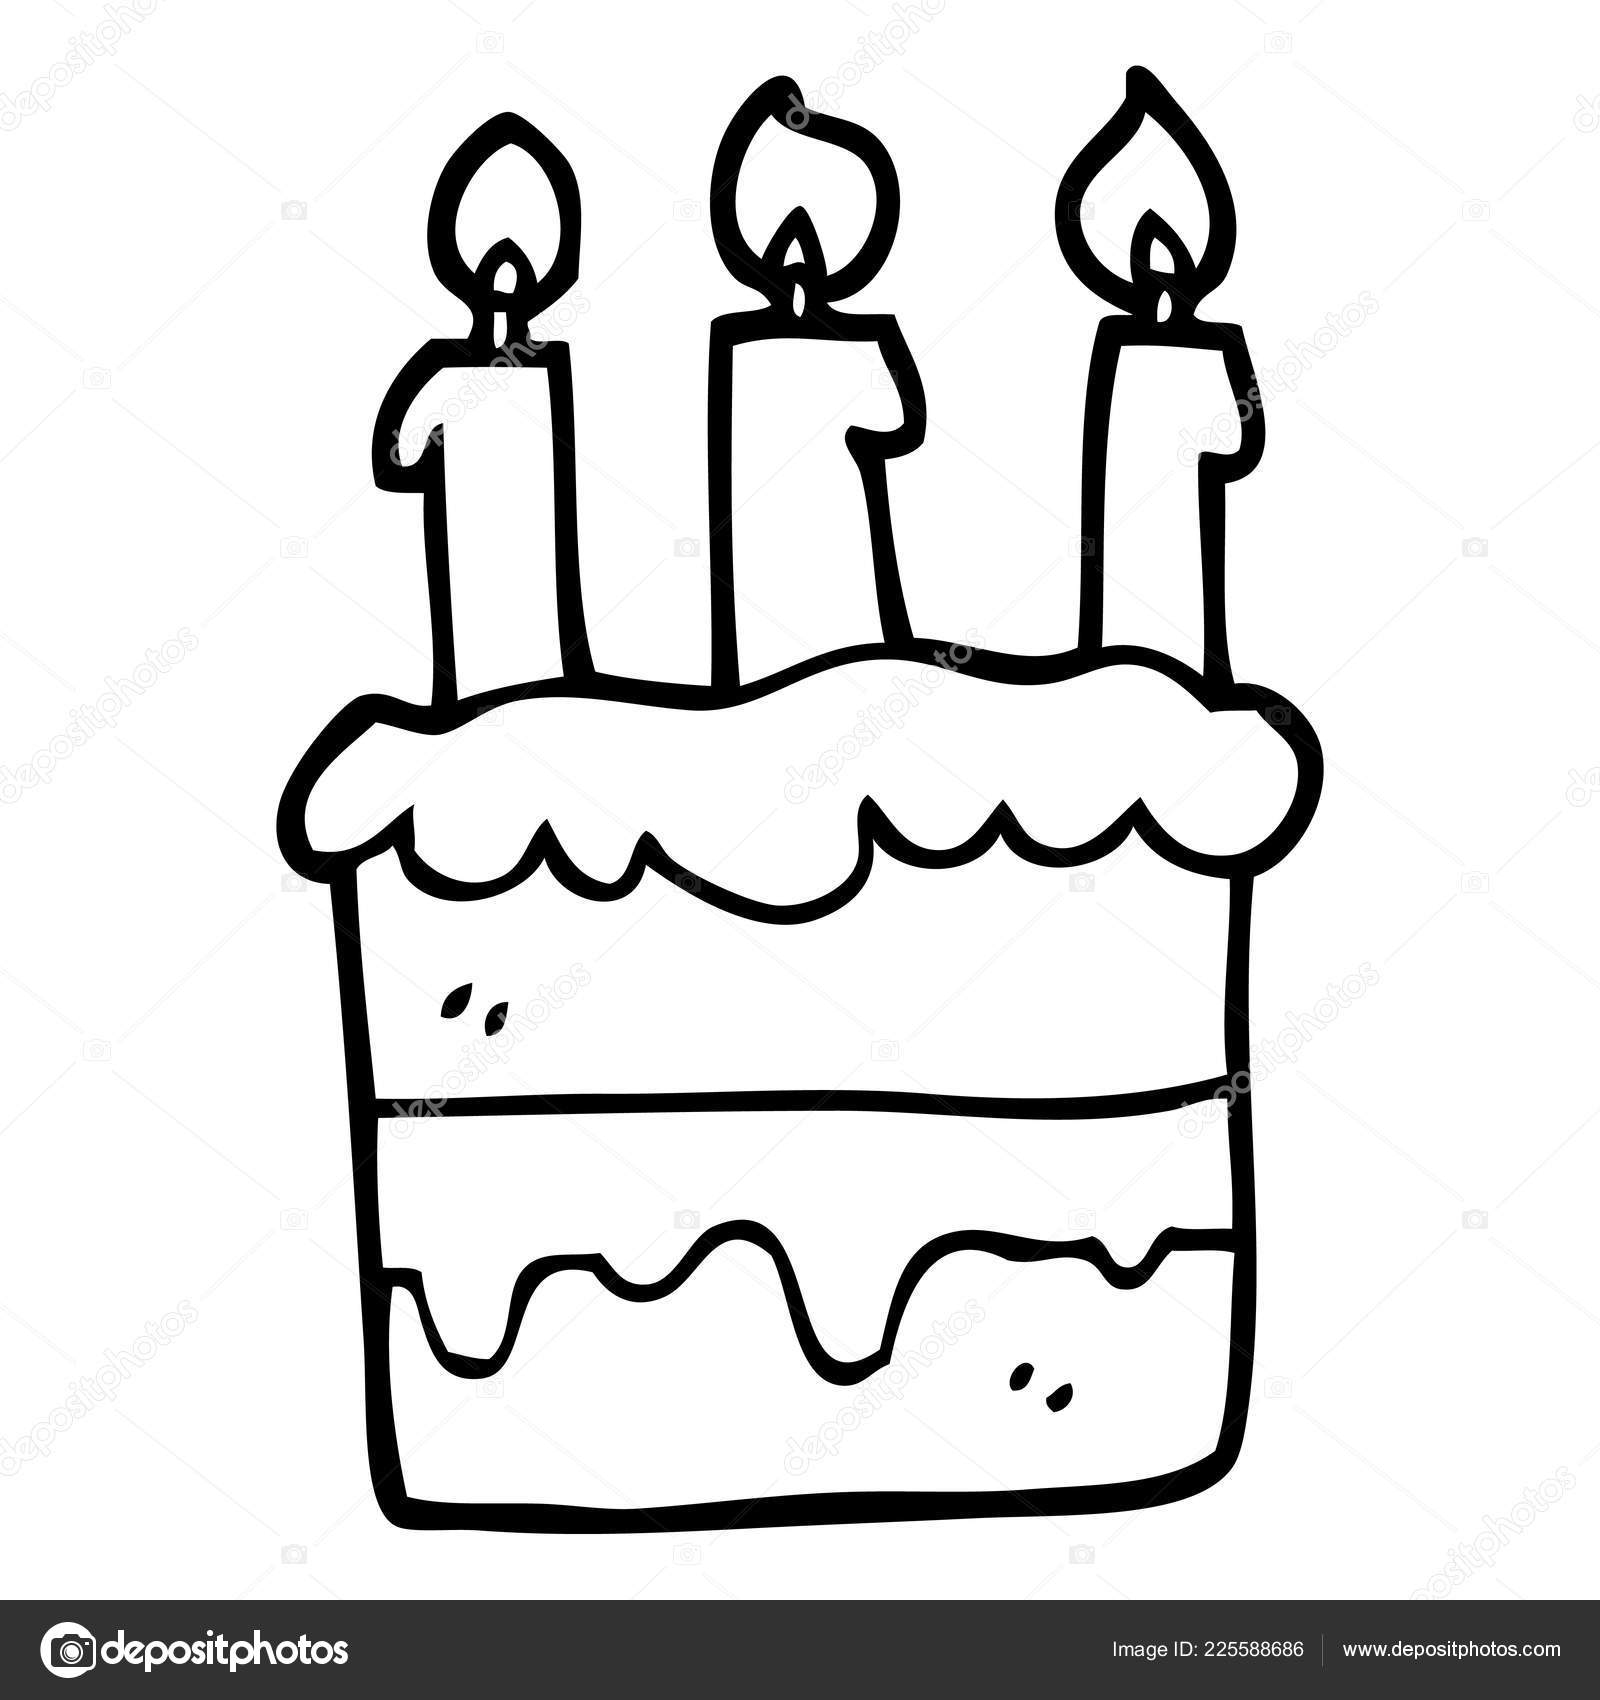 Awesome Clipart Birthday Cake Black And White Black White Cartoon Funny Birthday Cards Online Elaedamsfinfo